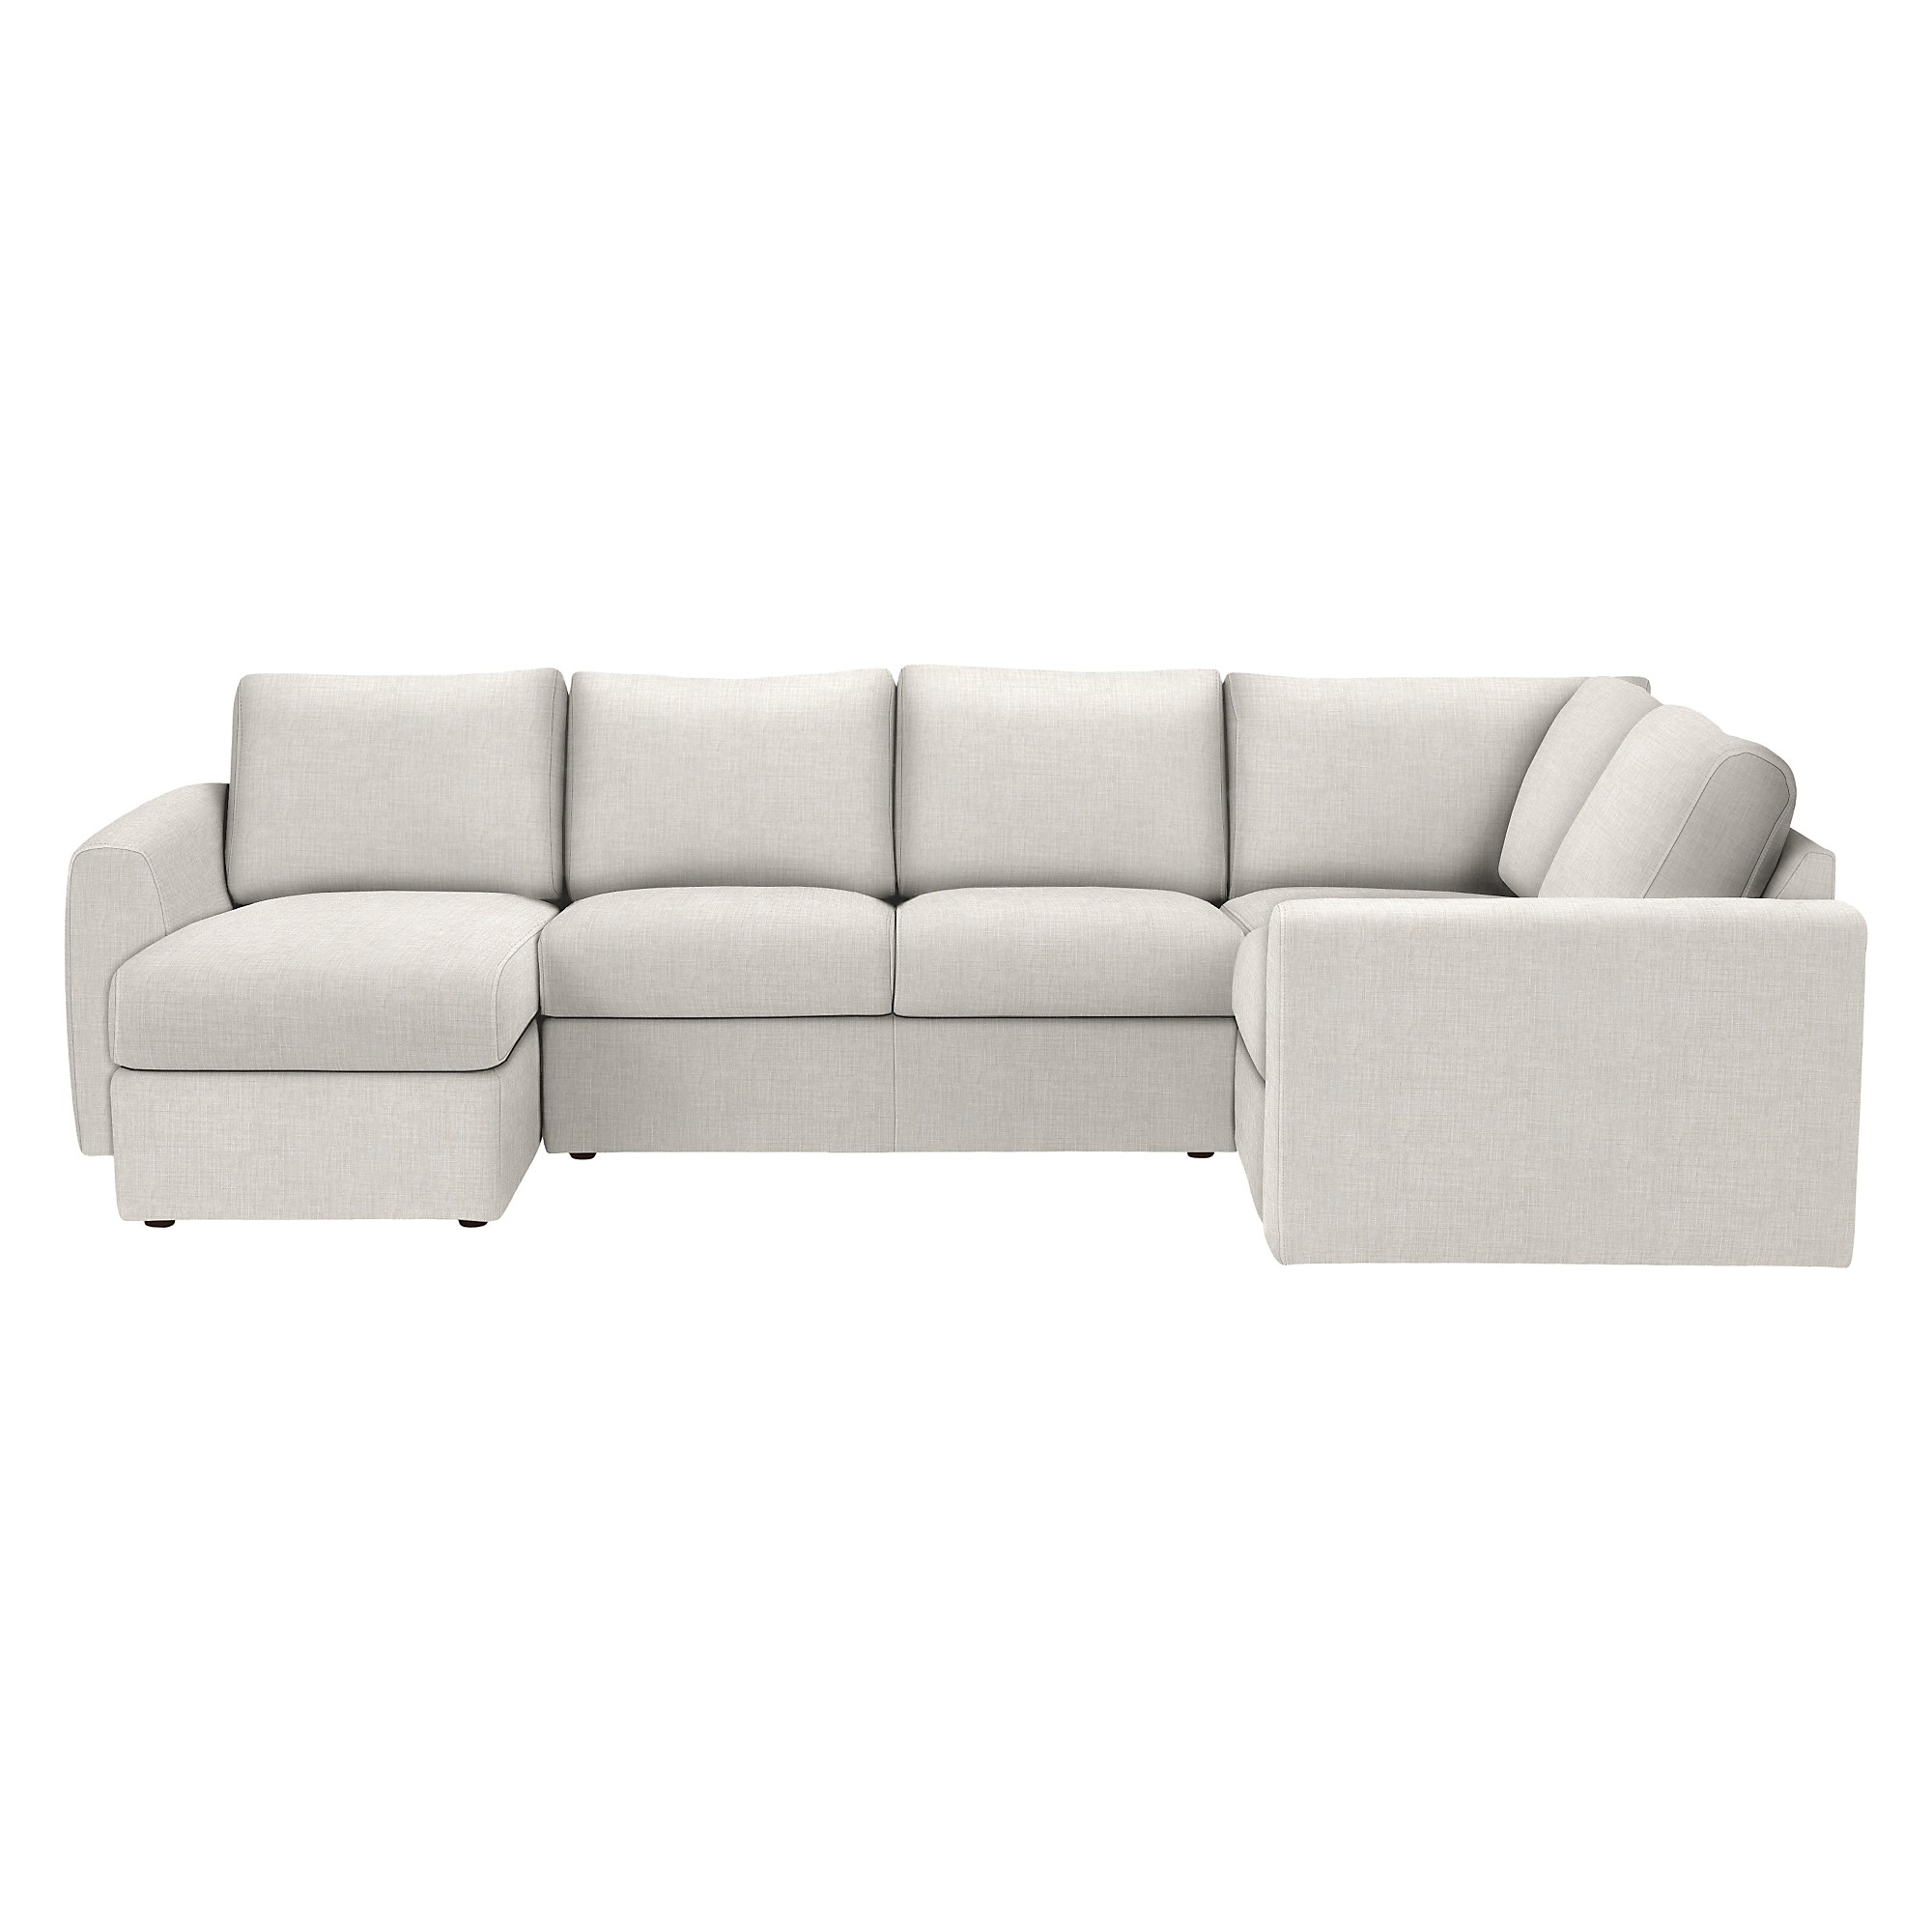 House by john lewis finlay ii corner chaise end sofa for Chaise end sofas